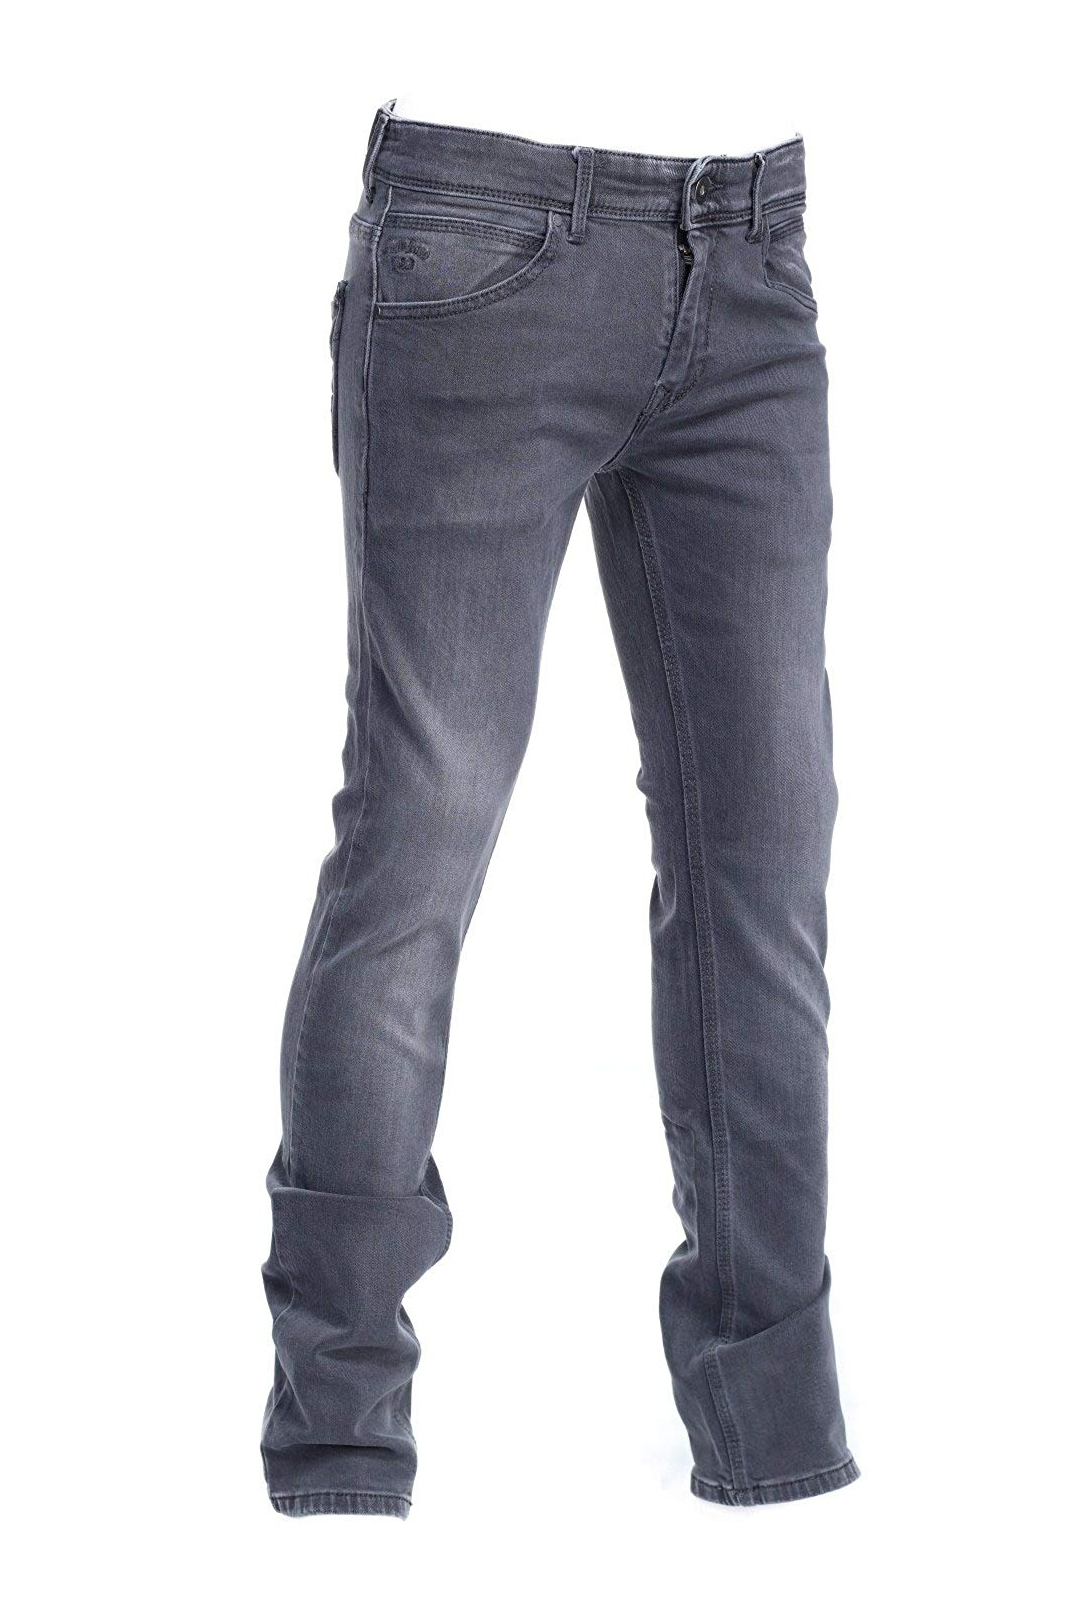 Bas  Pepe jeans PB200232 riveted gris